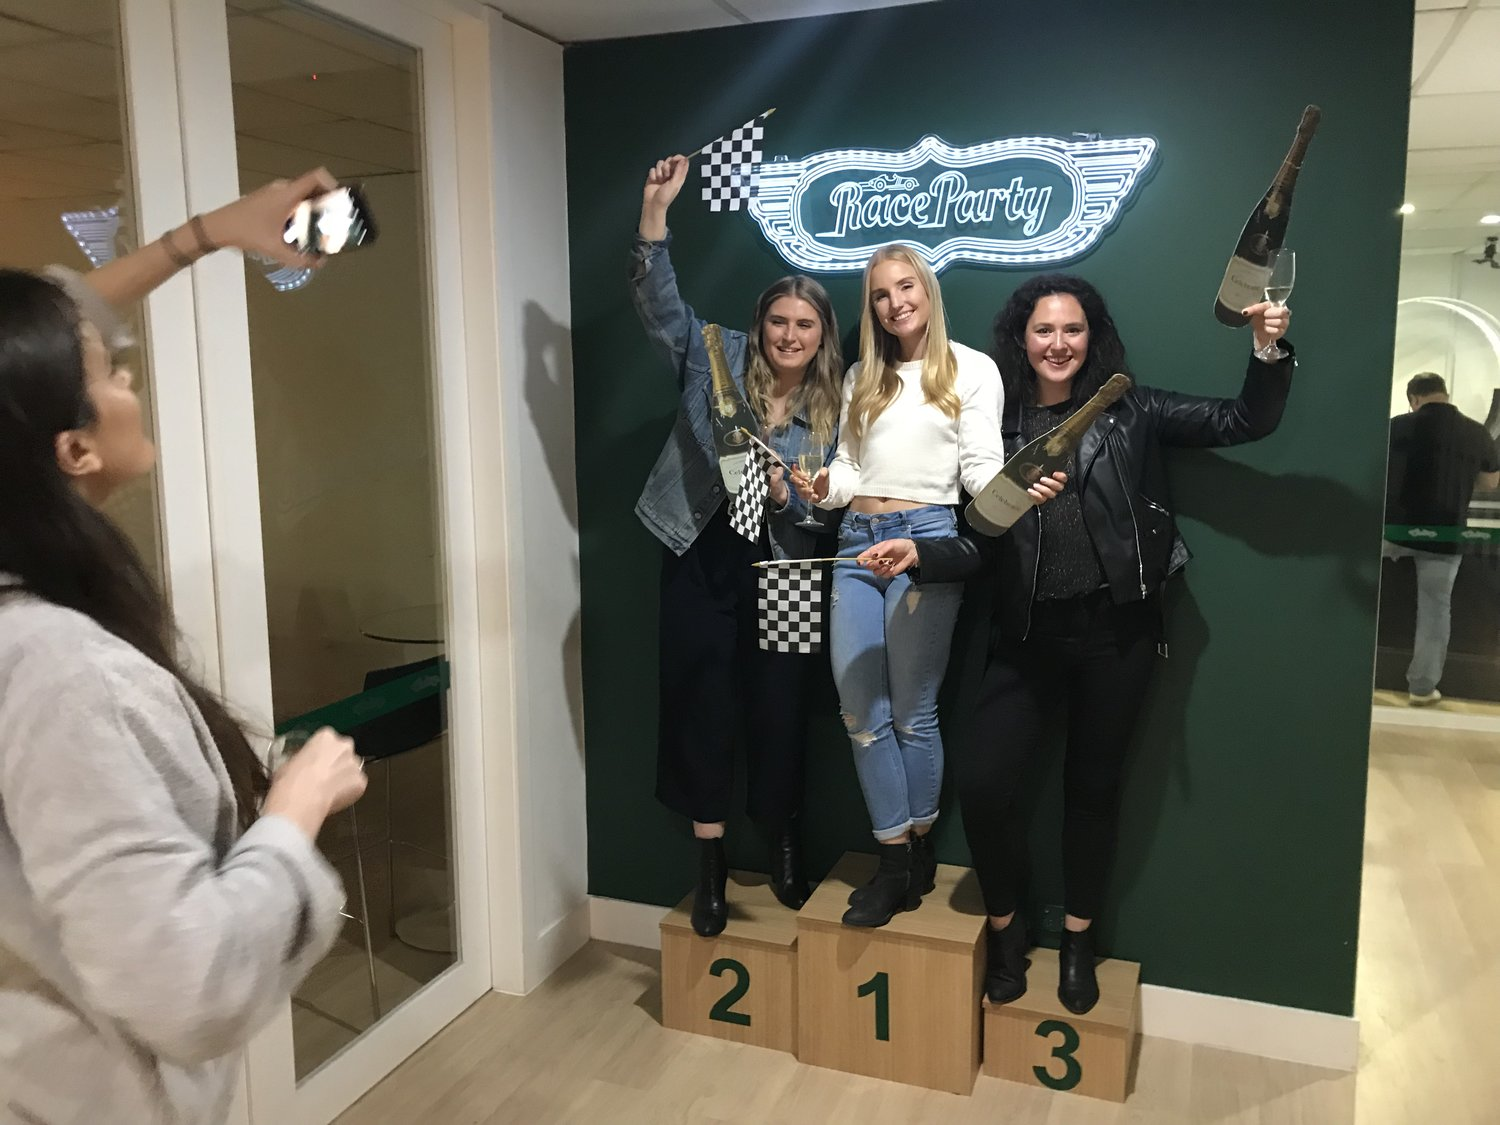 Race Party - Boutique Slot Car Racing, parties and events